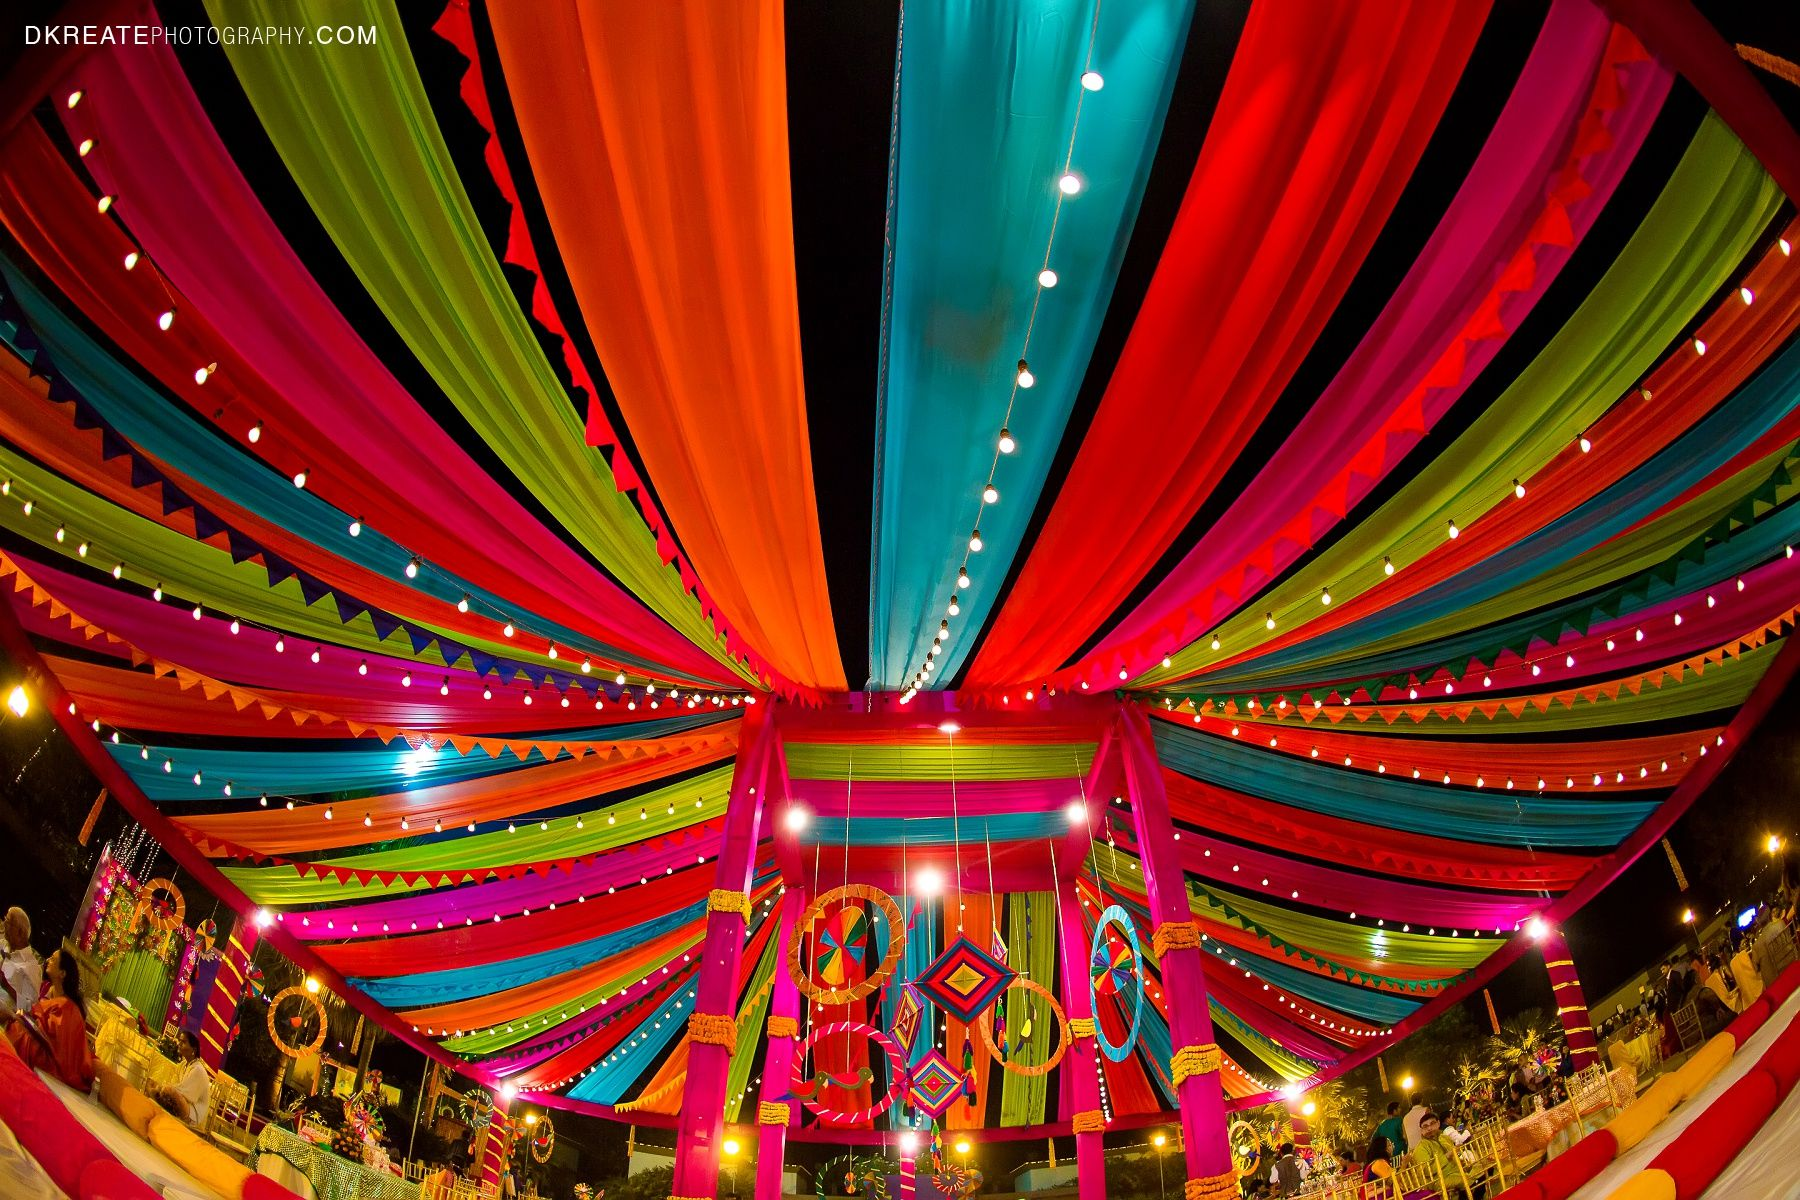 Indian wedding backdrop ideas. Colorful. Mela themed